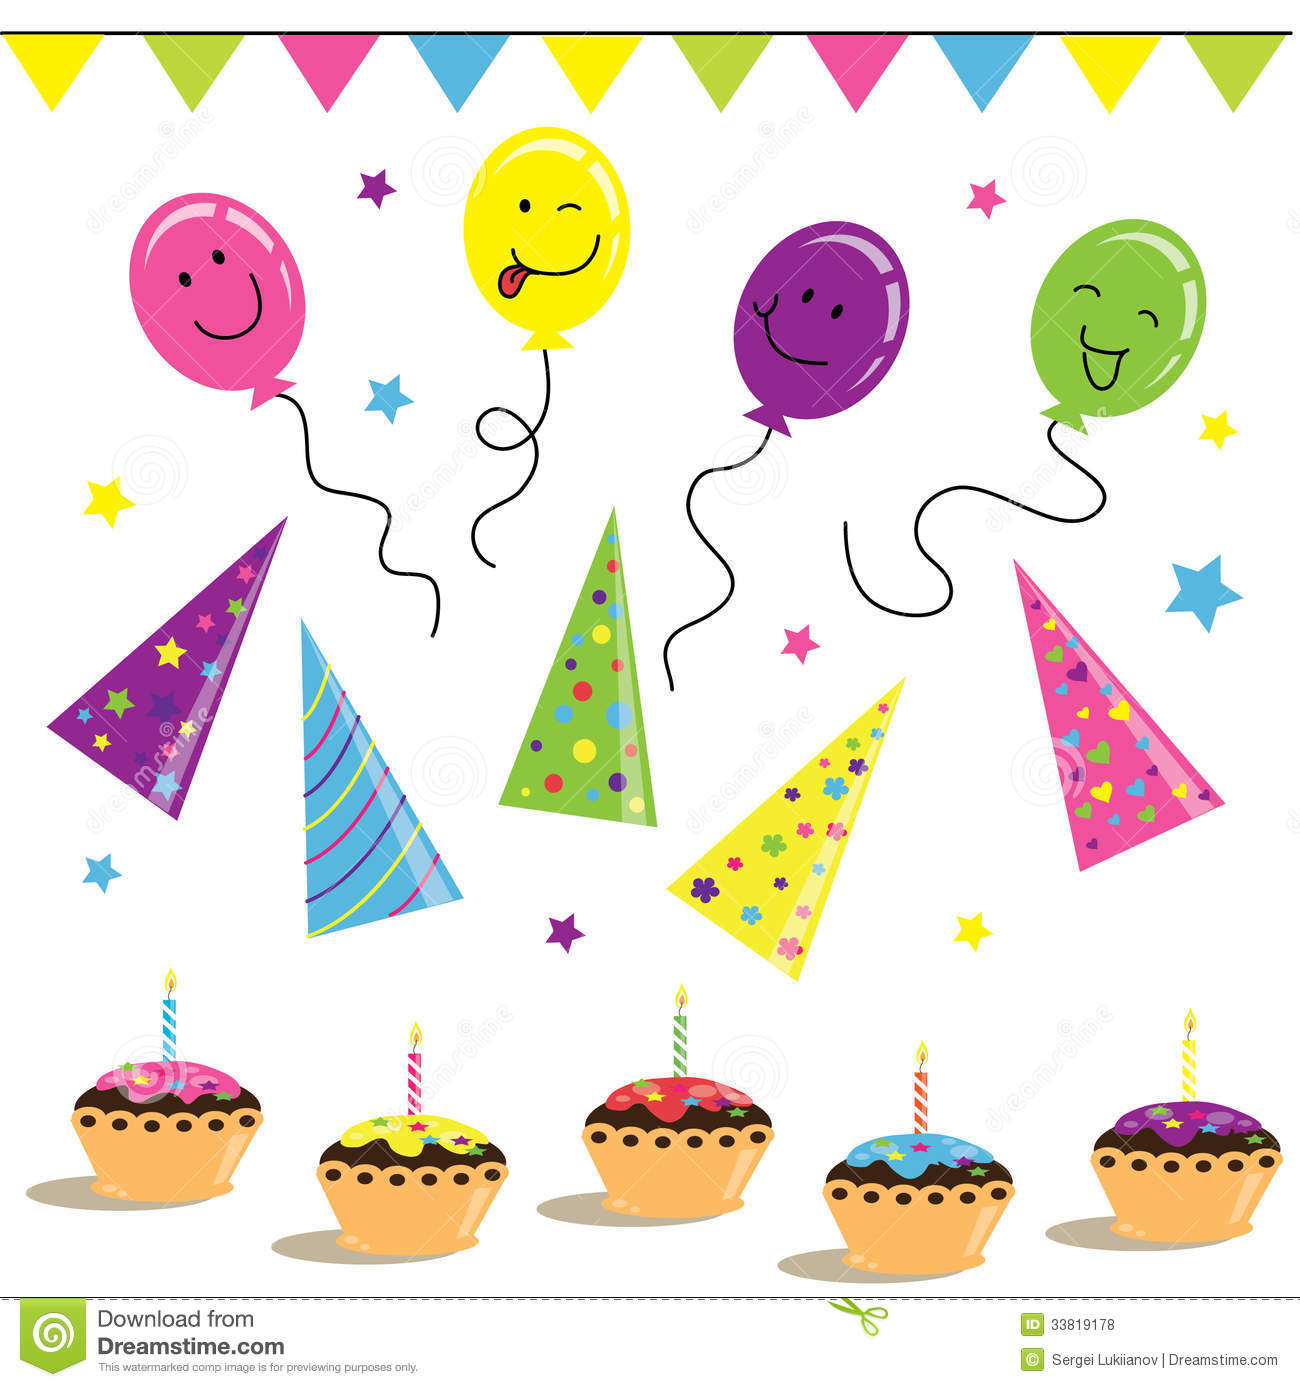 Ballons, Biscuits And Celebration On Birthday Royalty Free